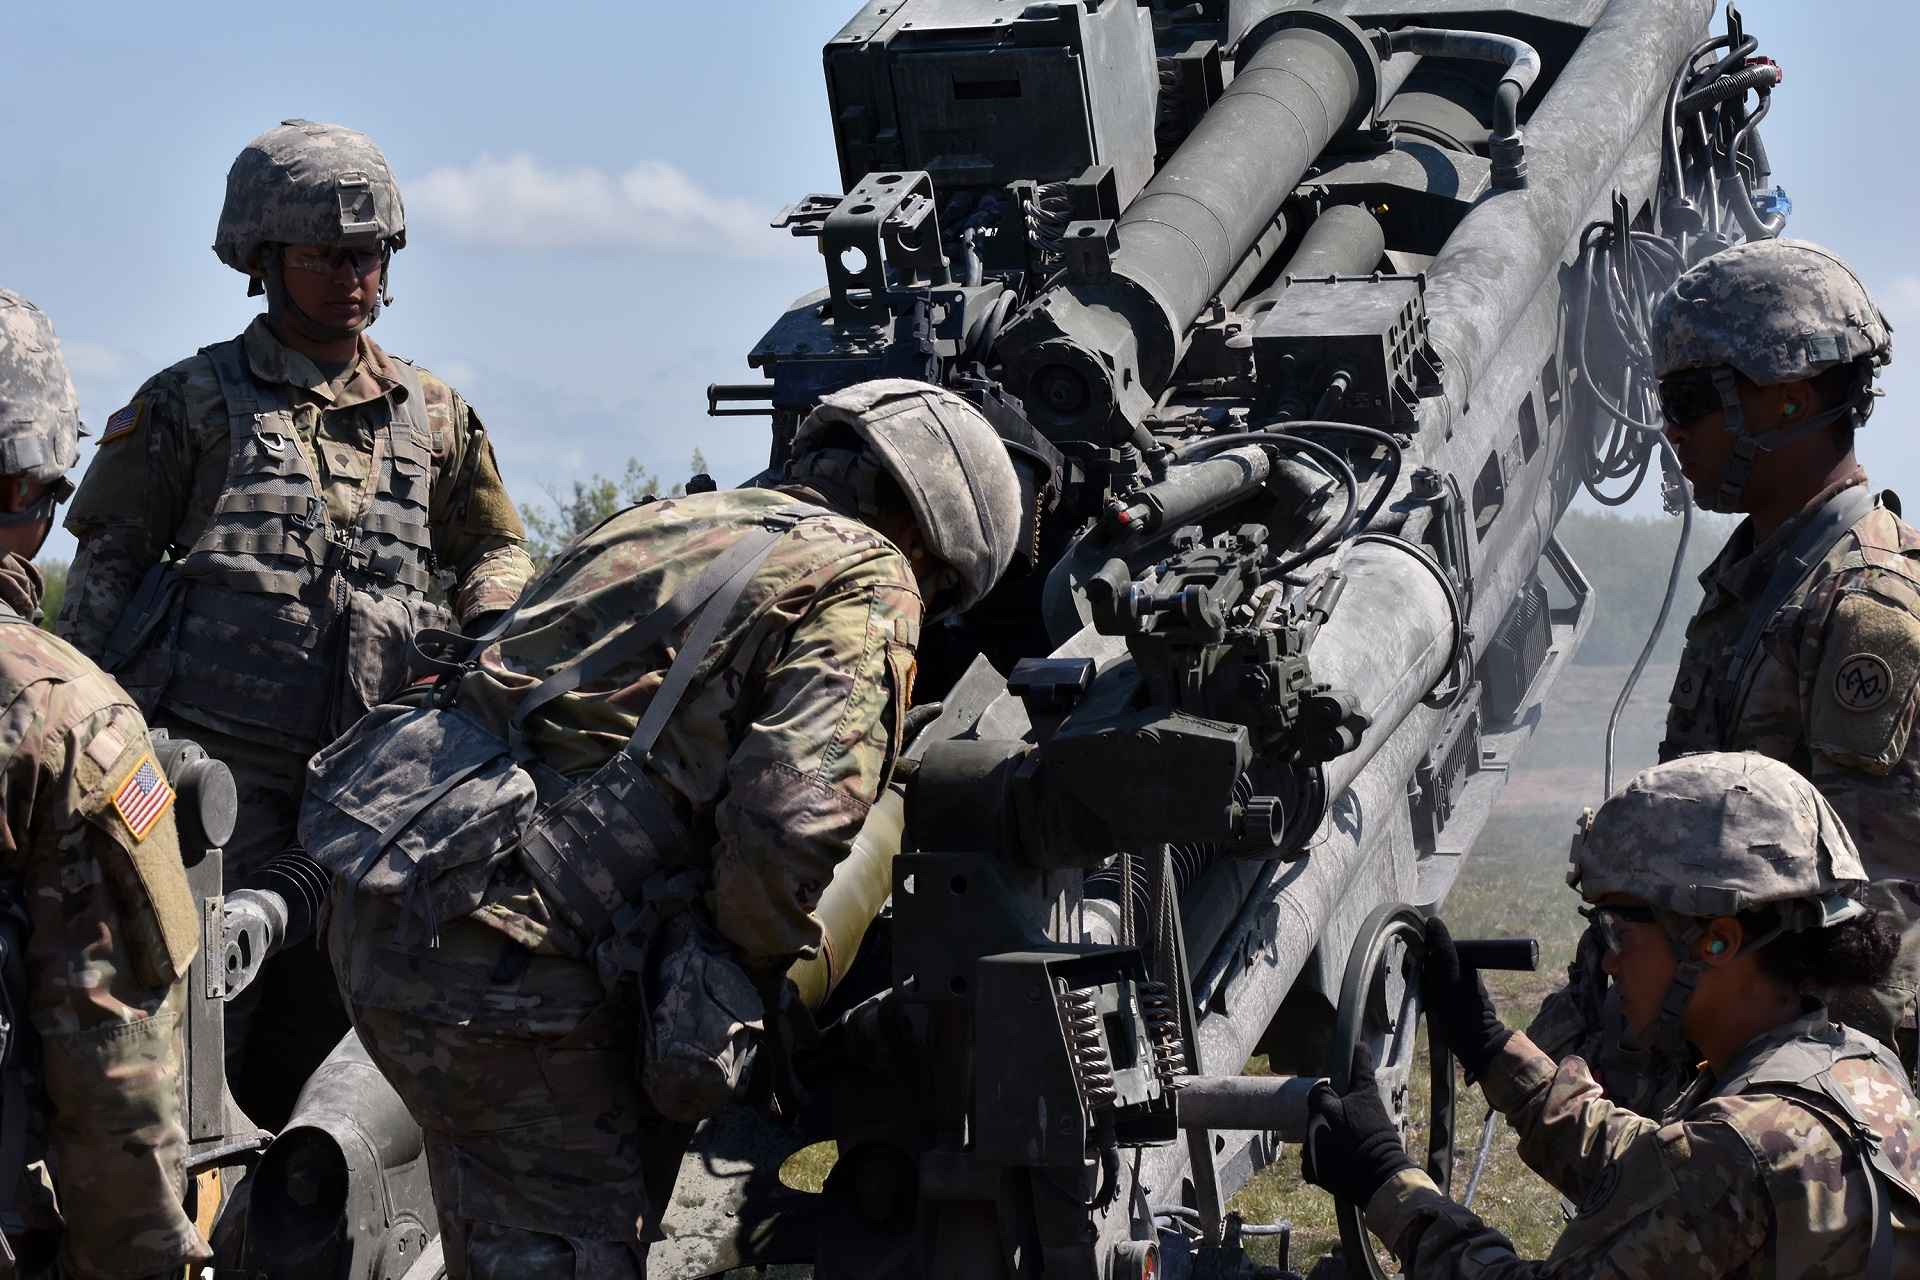 New York National Guard Soldiers assigned to Charlie Battery, 1st Battalion, 258th Field Artillery, load a round into a M777 Howitzer, on Fort Drum, Watertown N.Y., May 22nd, 2018. Soldiers from the 258 spent the past two weeks preparing to fire these weapons, which are much larger, and more powerful than the previous cannon's they used. (N.Y. Army National Guard photo by Spc. Andrew Valenza)